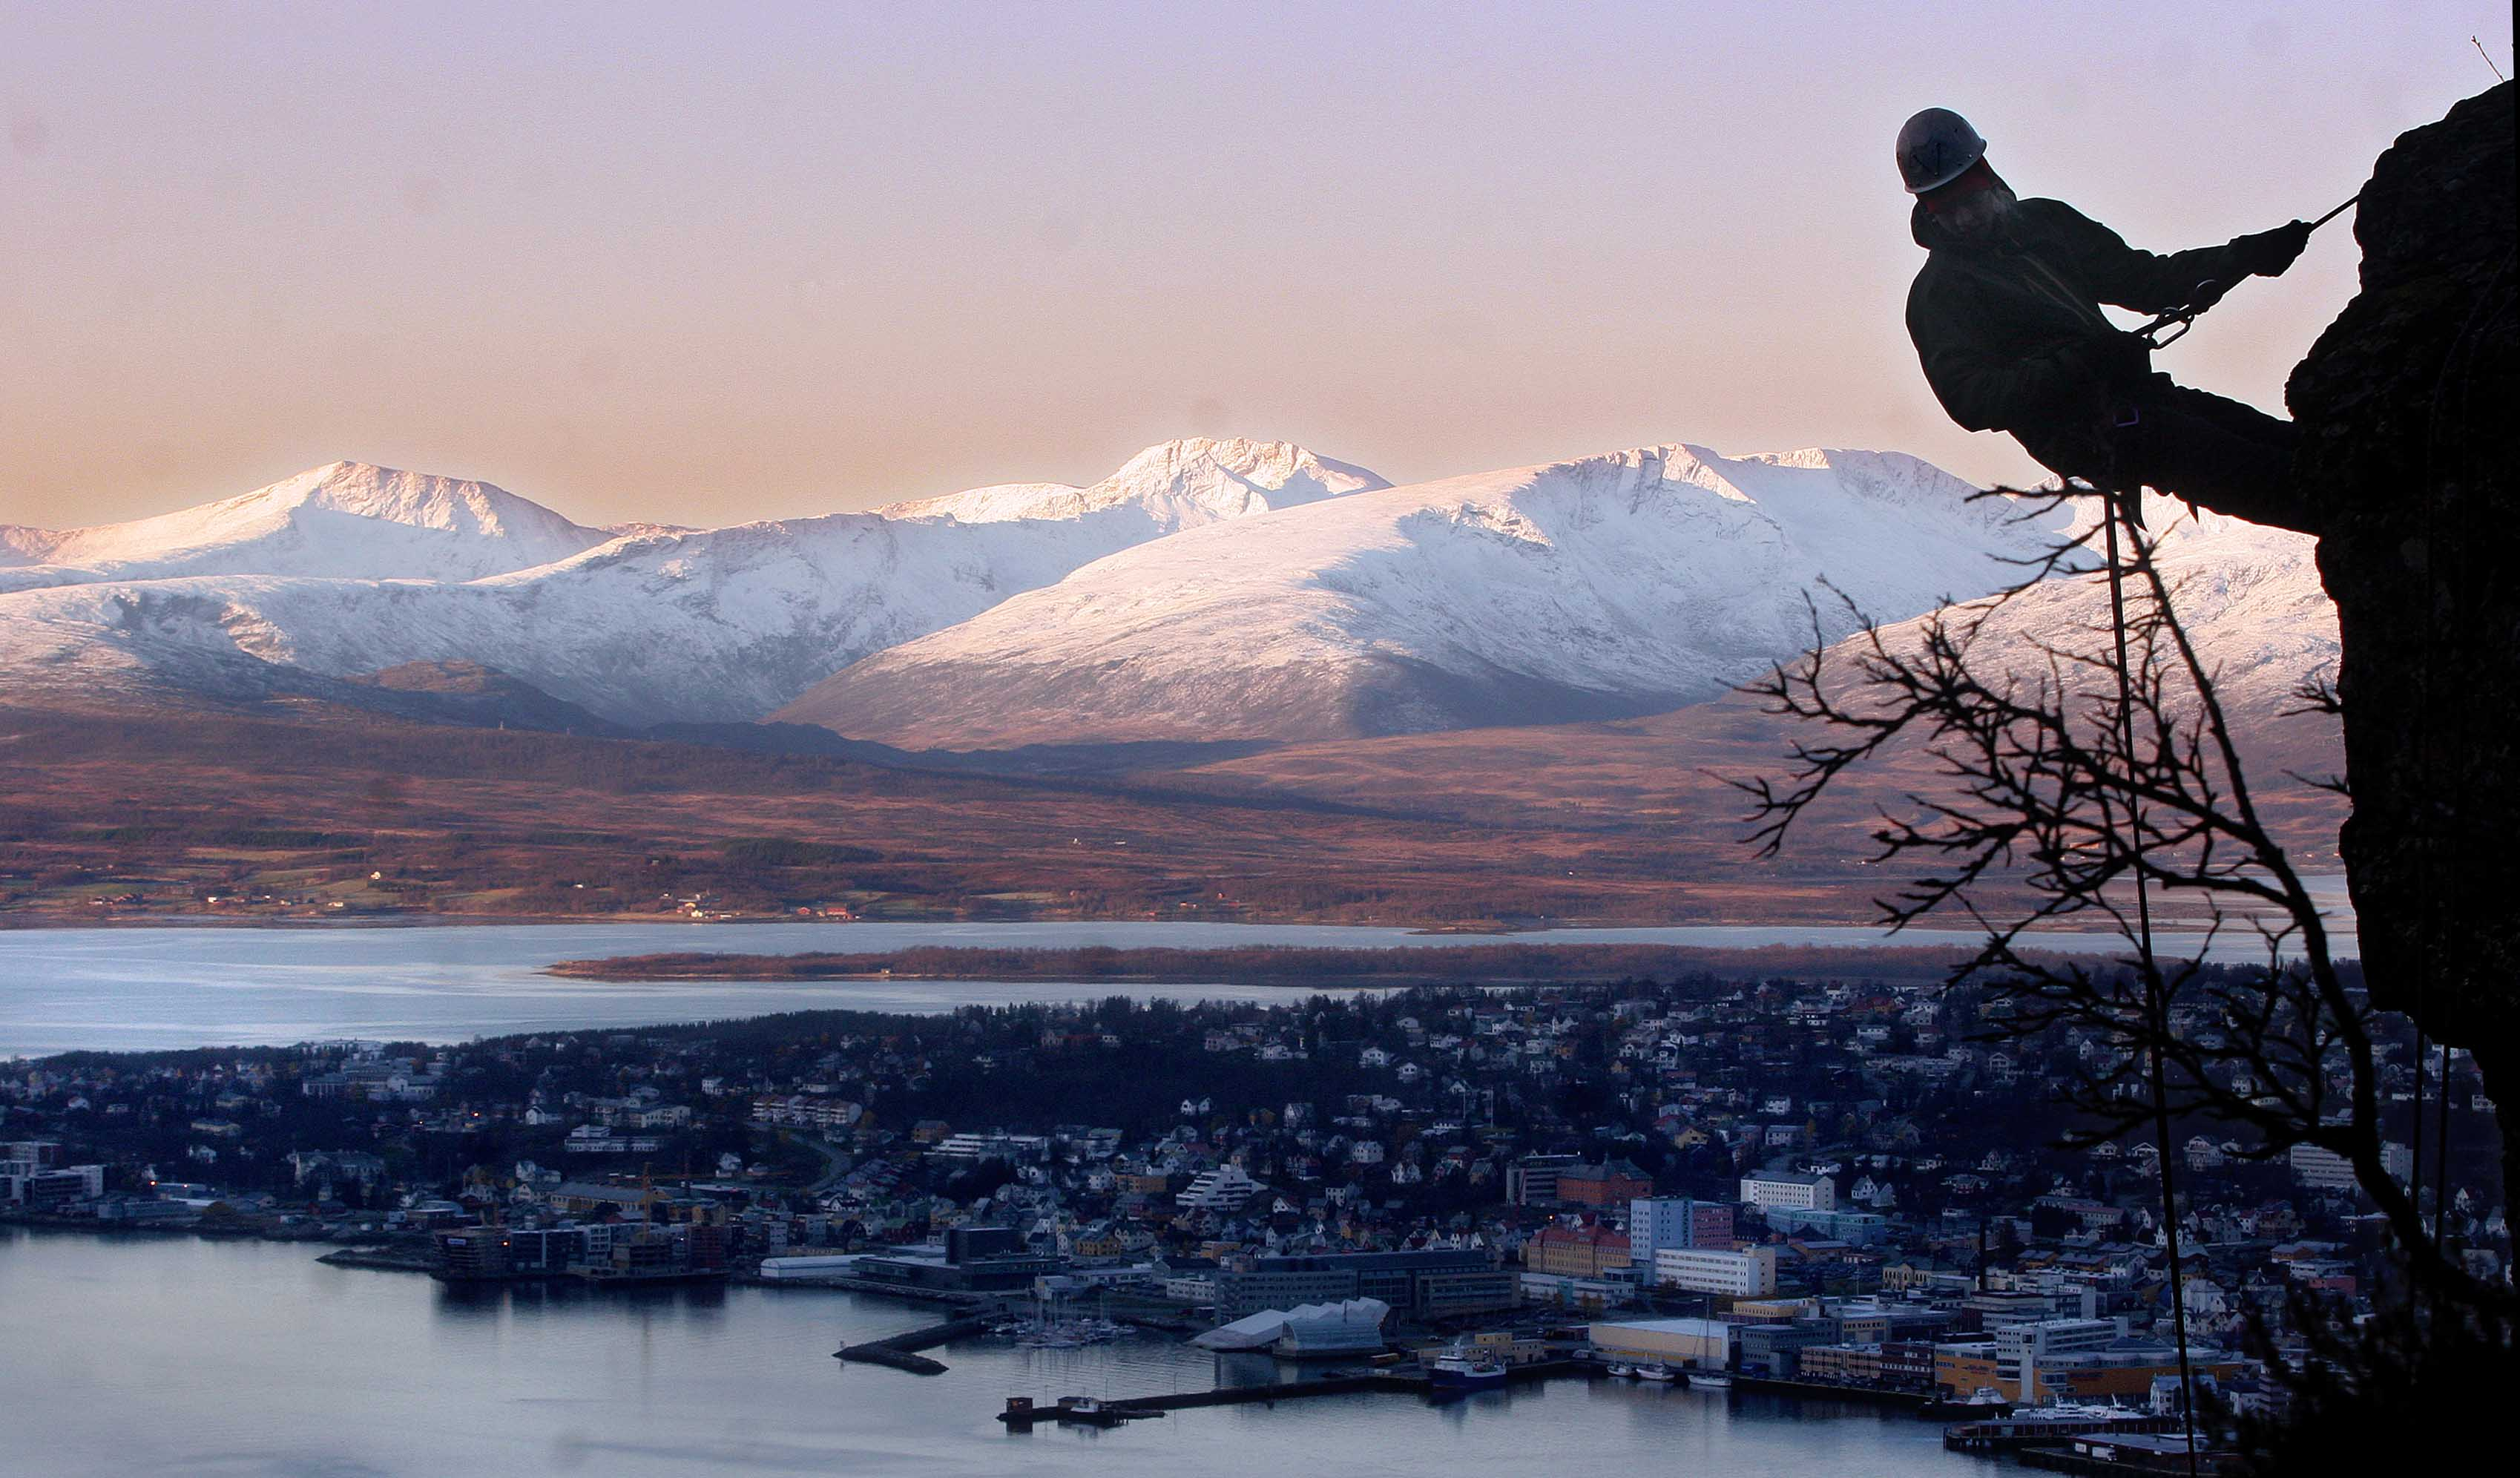 A rock climber in the foreground with the view of Tromsø.